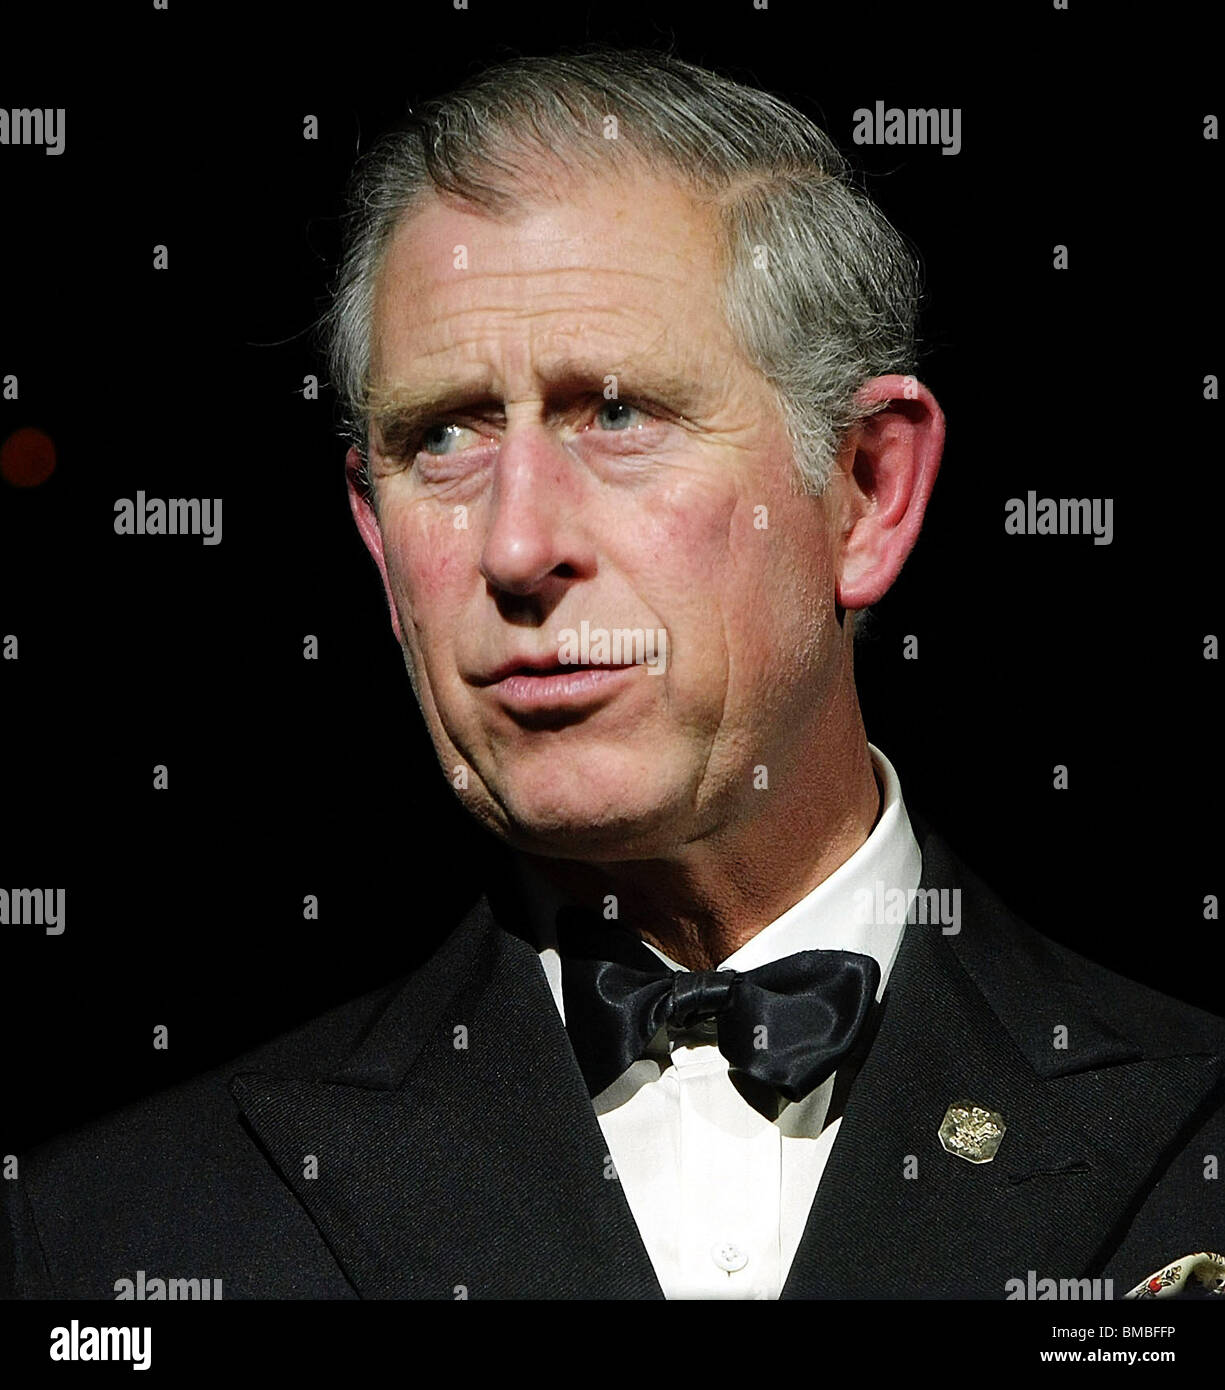 Britain's Prince Charles, the Prince of Wales making a speech at a black tie event in London - Stock Image